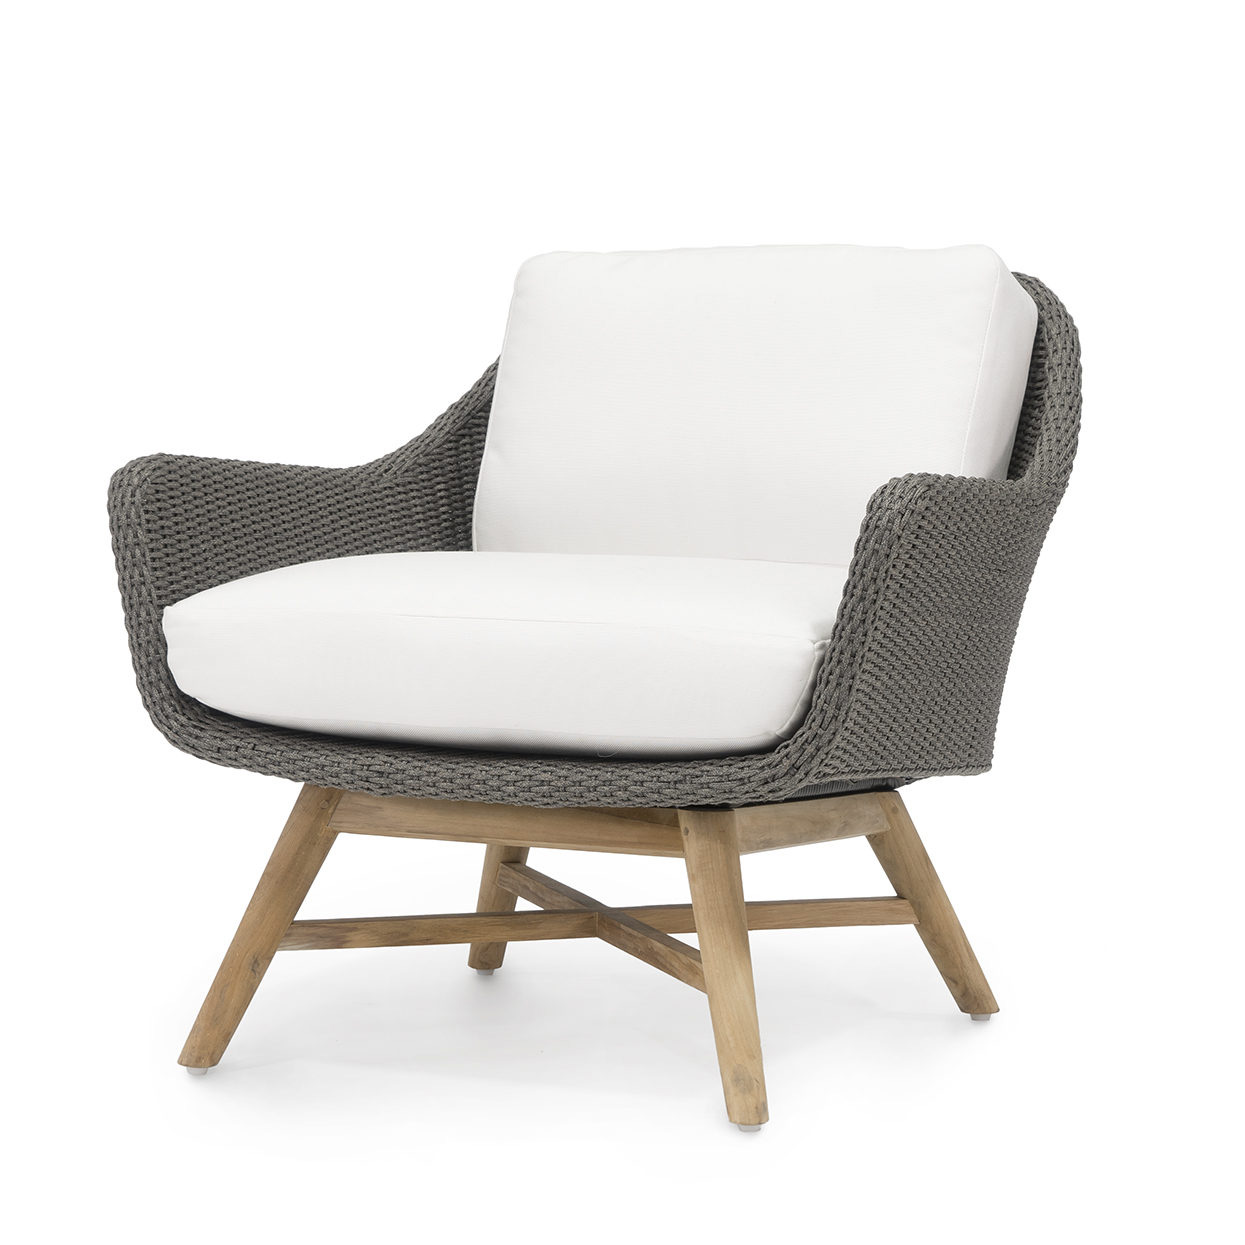 San-Remo-Outdoor-Lounge-Chair-1